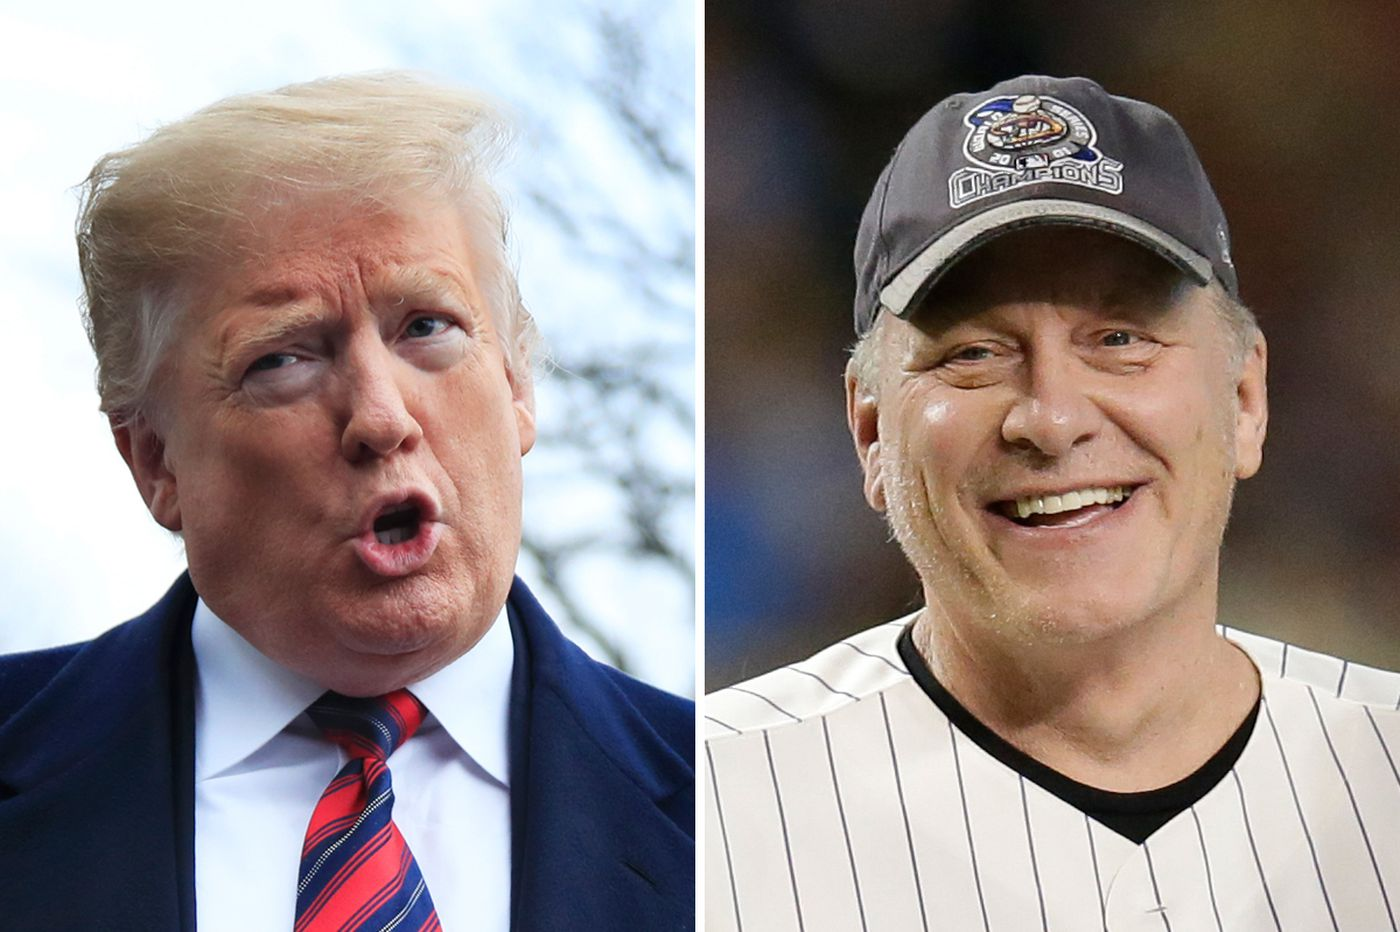 Curt Schilling belongs in Hall of Fame even though his views are worthy of nothing but shame | Bob Brookover